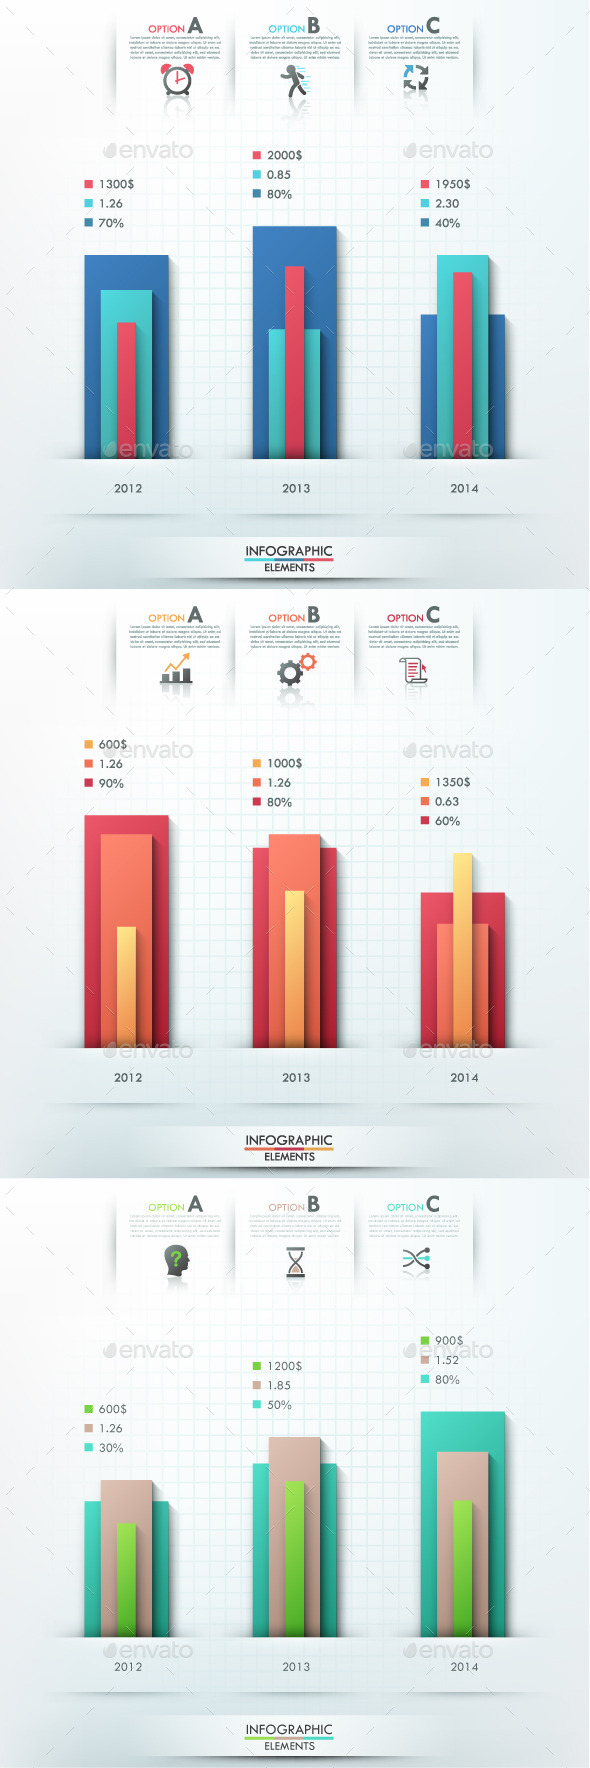 GraphicRiver Smart Infographic Options Template 3 Items 9499676